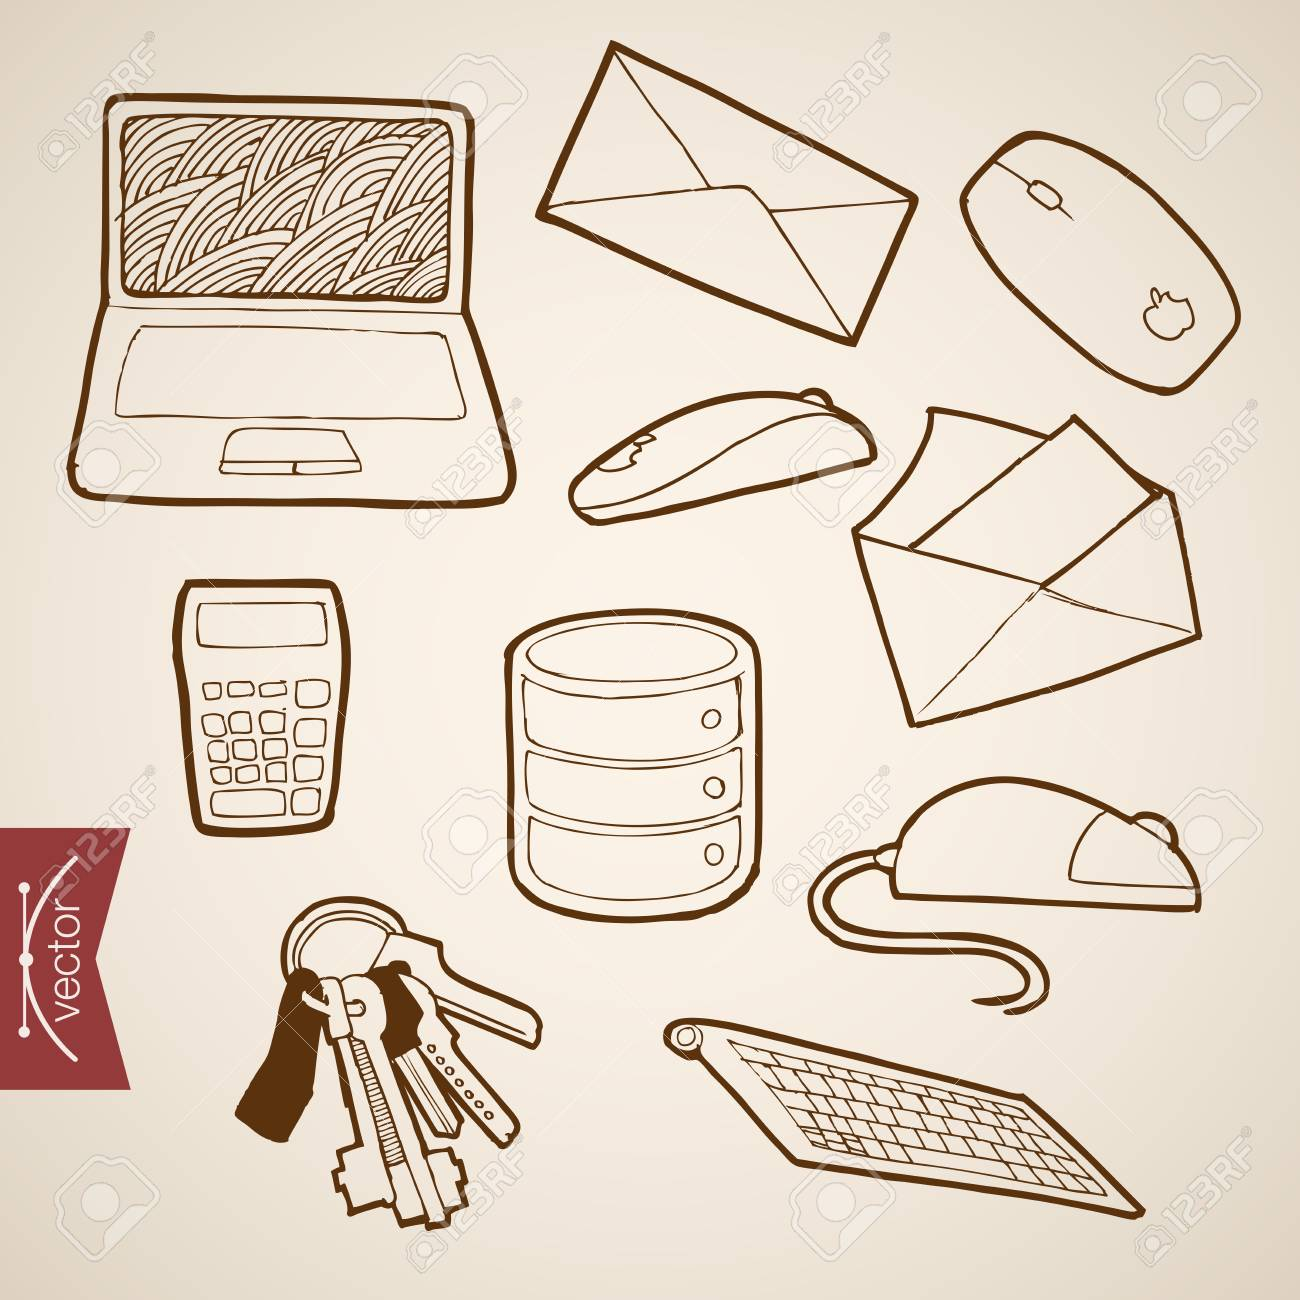 Pencil sketch office supplies illustration engraving vintage hand drawn vector working place laptop letter calculator mouse collection